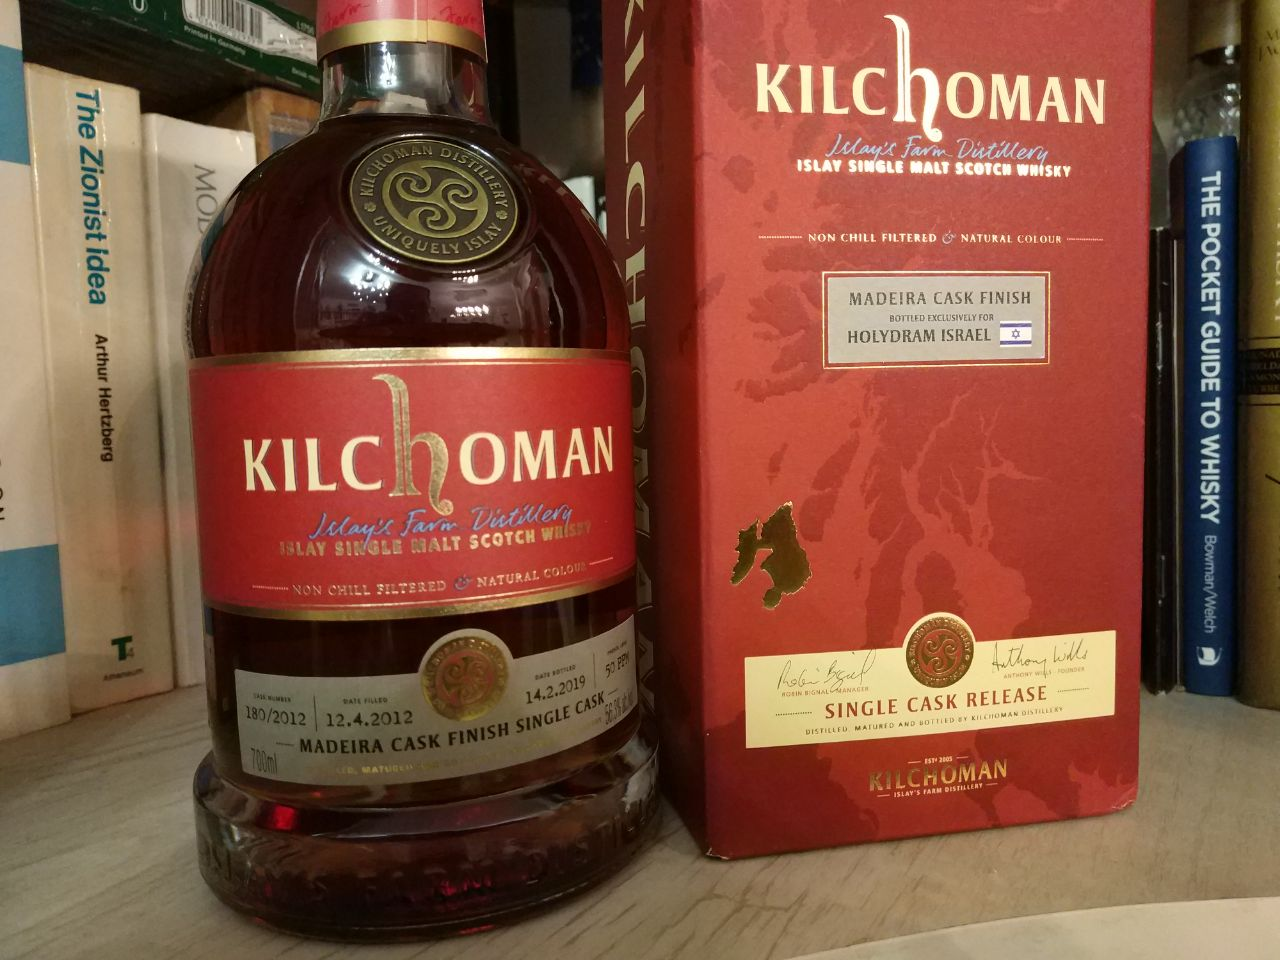 Bottle of Kilchoman Madeira Cask bottled for HOLY DRAM ISRAEL